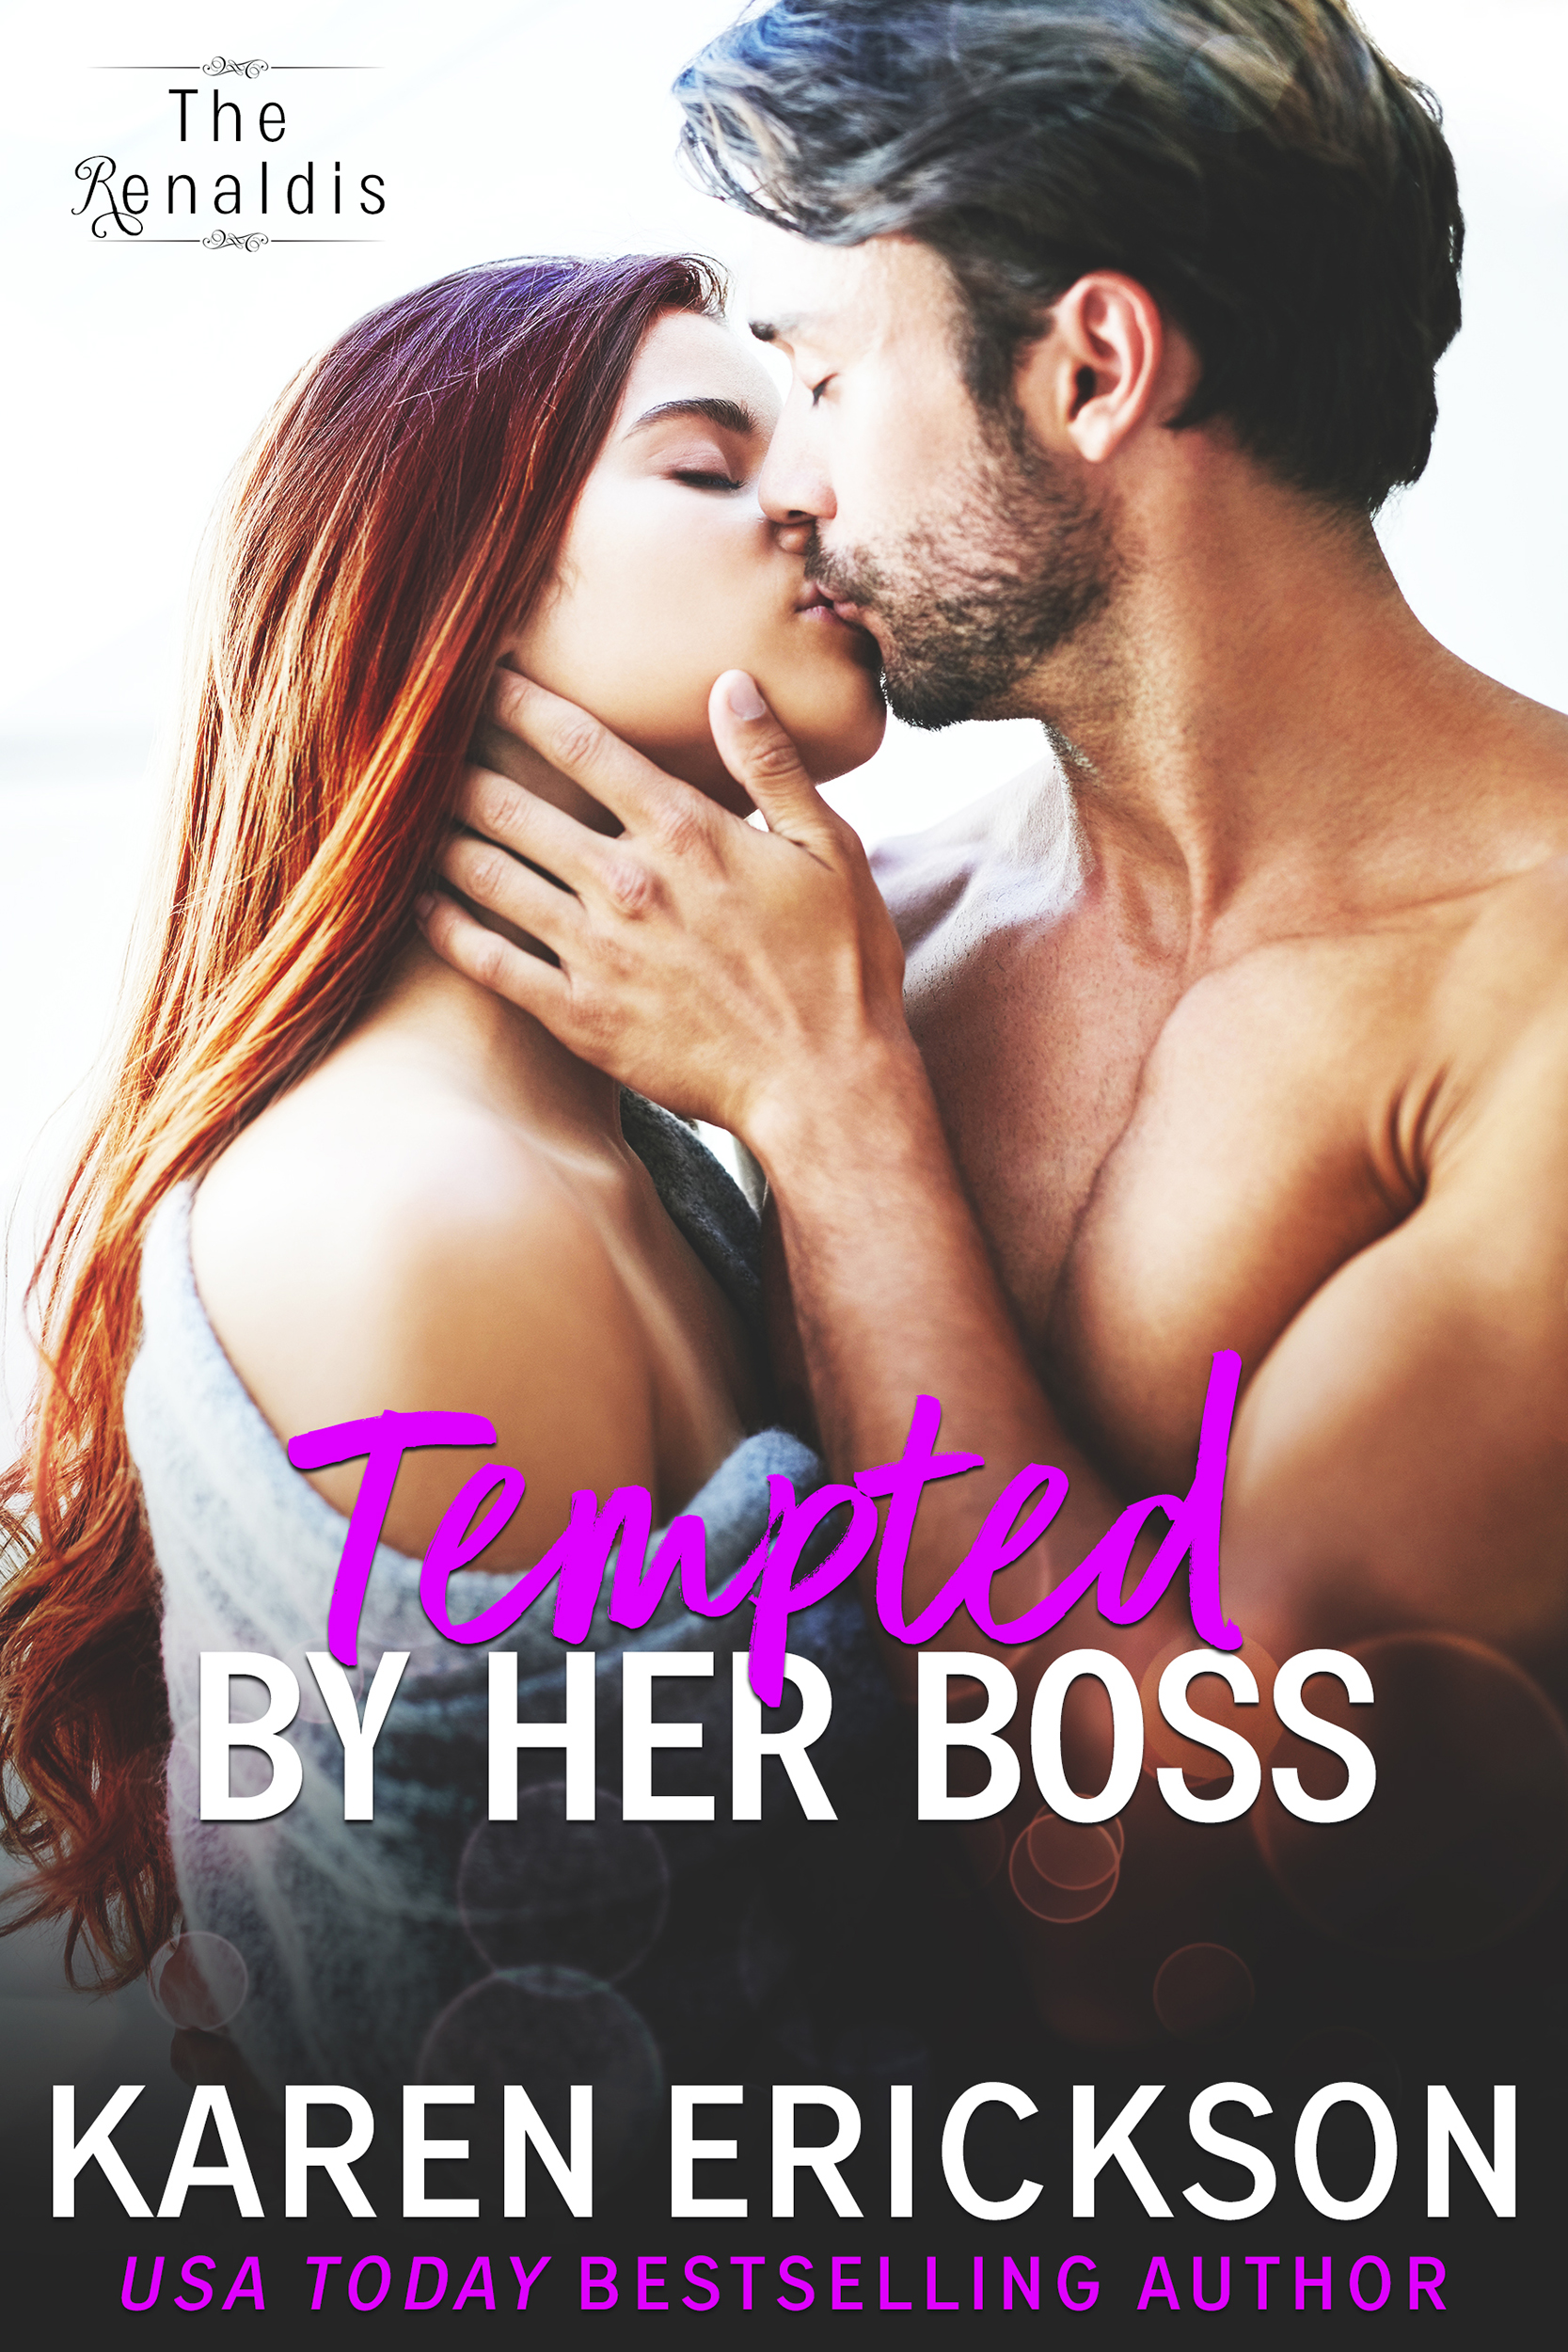 Tempted By Her Boss - The Renaldis, Book 1Amazon • B&N • iBooks • Kobo • GooglePlayBusiness? Meet pleasure…Paige Stewart loves her job. Nannying for little Matty is a pleasure.But she wants more.She wants the kind of pleasure that's found in her boss Matteo's master bedroom.Matteo Renaldi knows it's wrong to lust after his nanny. She's too sweet for him, too pure. Too young.But he can't help himself.The whispers start as soon as they get to his family home in Italy. But then, so does falling in love with her. And when one particularly ugly story blows up in their faces, their reputations might escape unscathed, but their hearts may not…Amazon • B&N • iBooks • Kobo • GooglePlay